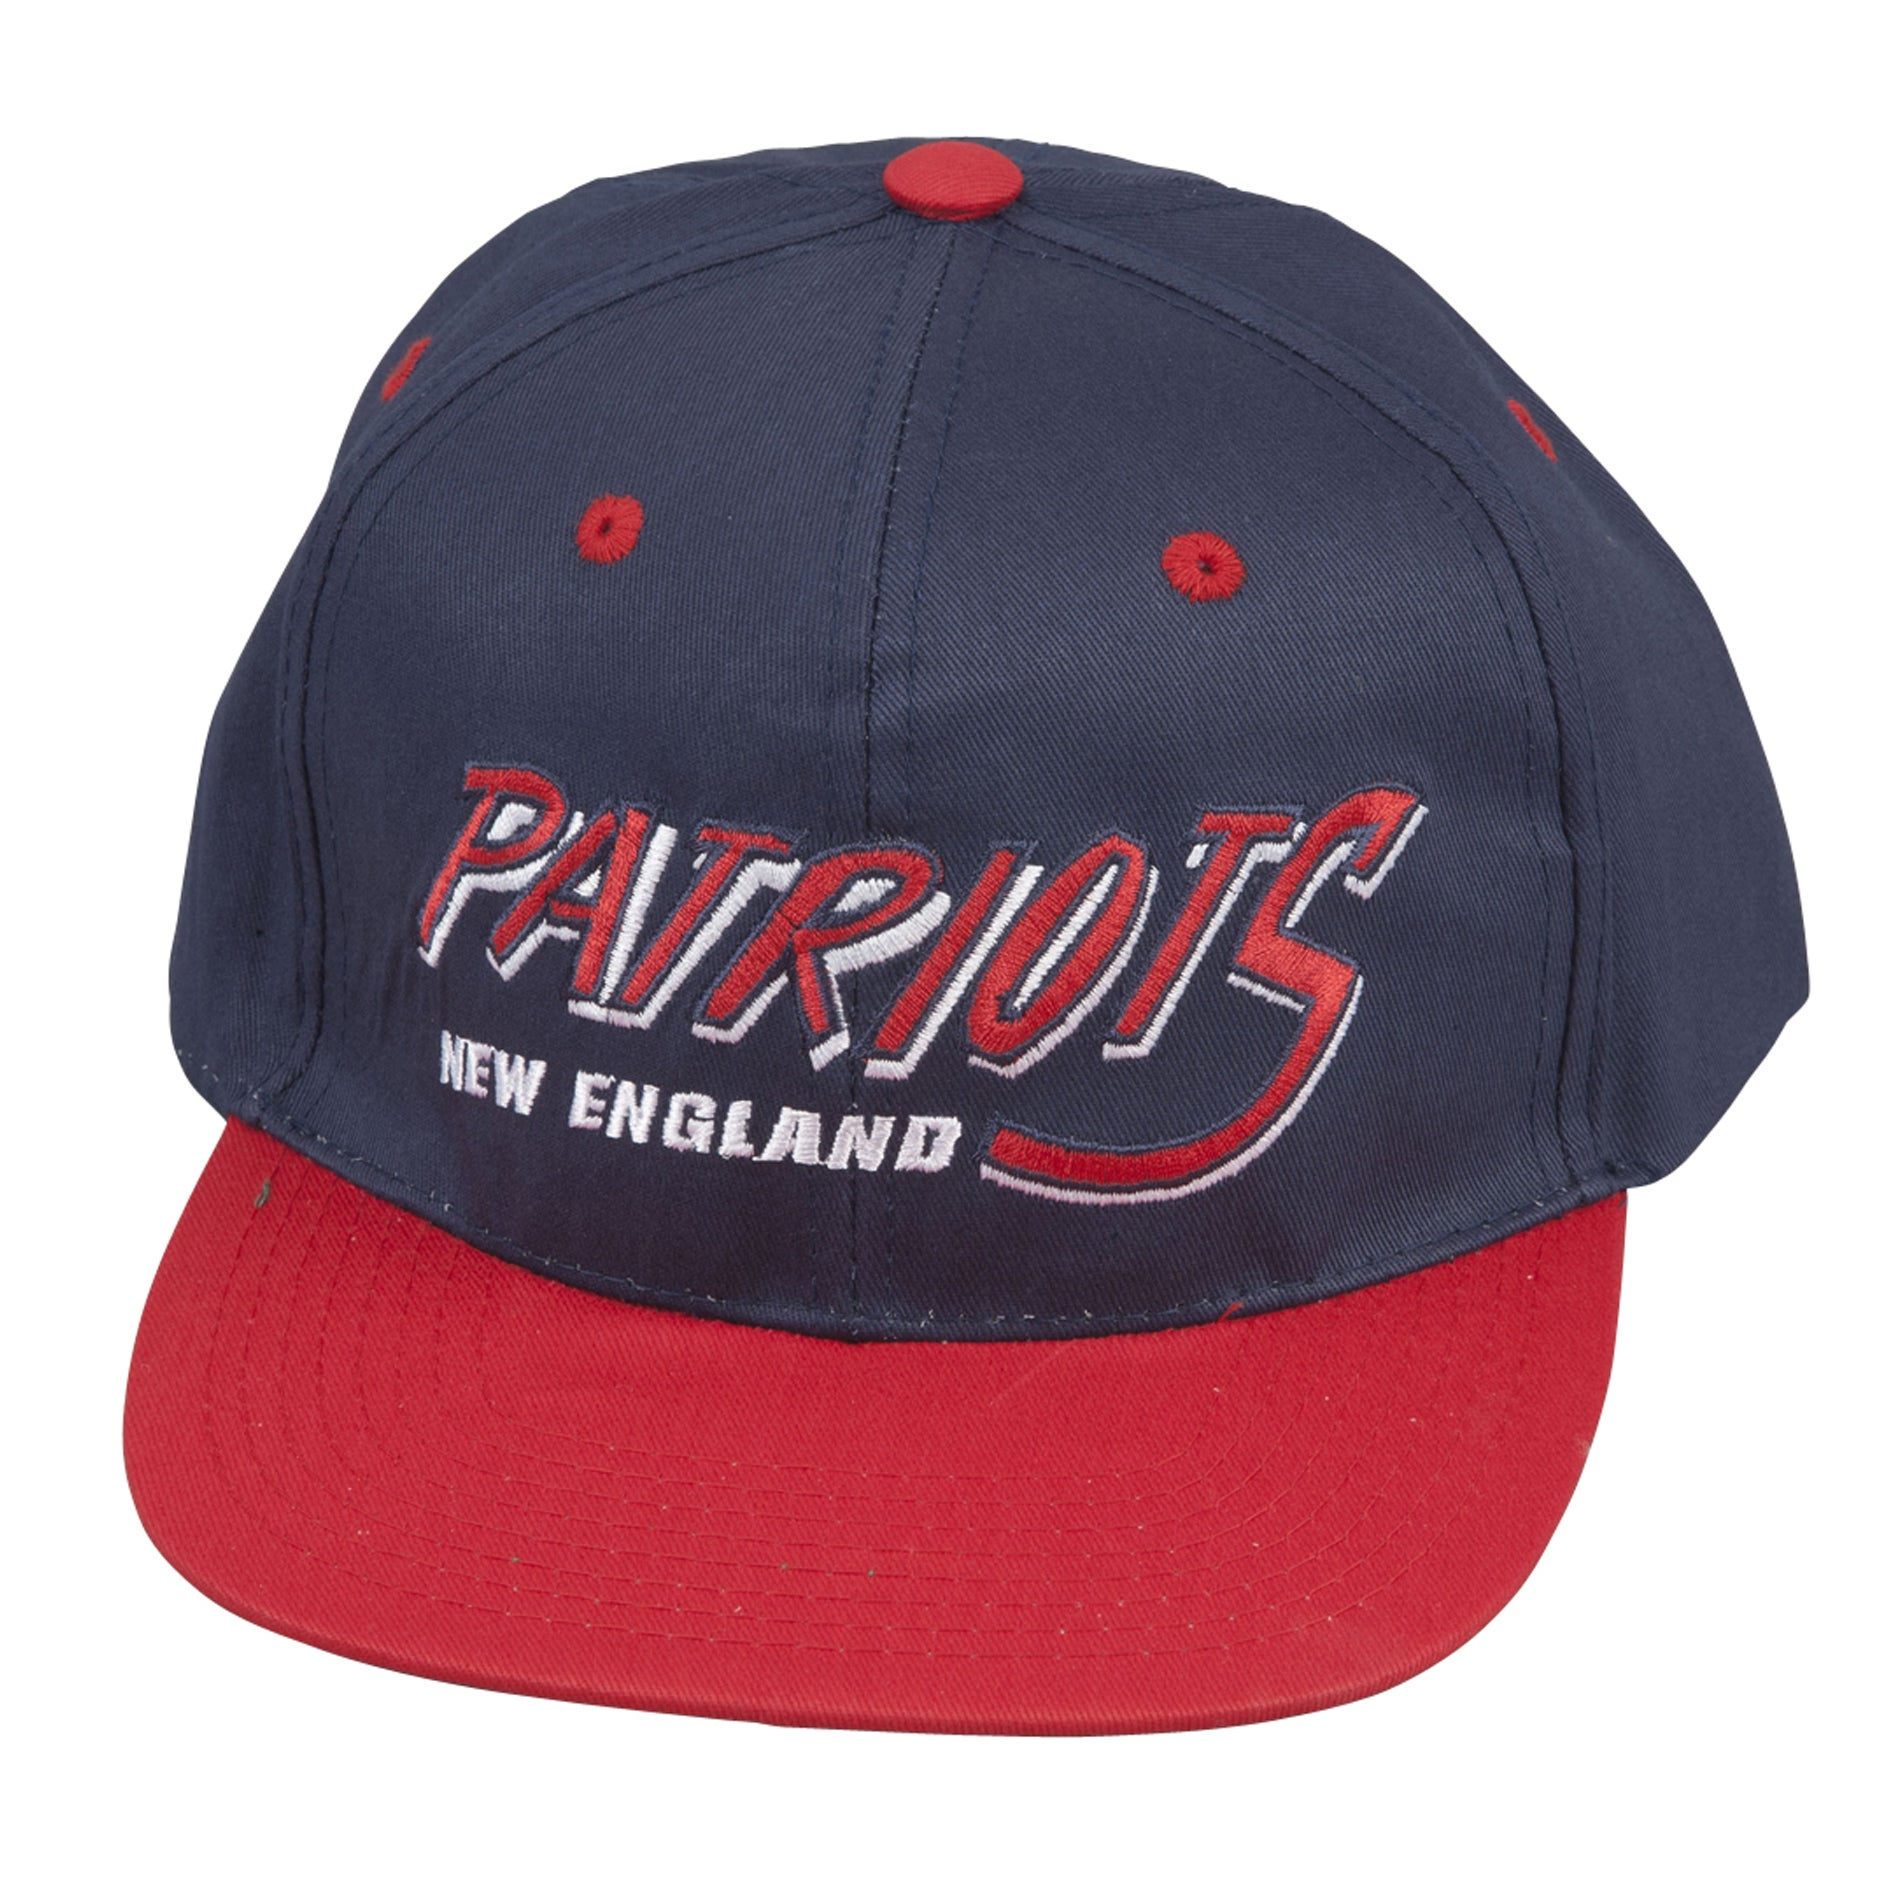 New England Patriots Retro NFL Snapback Hat